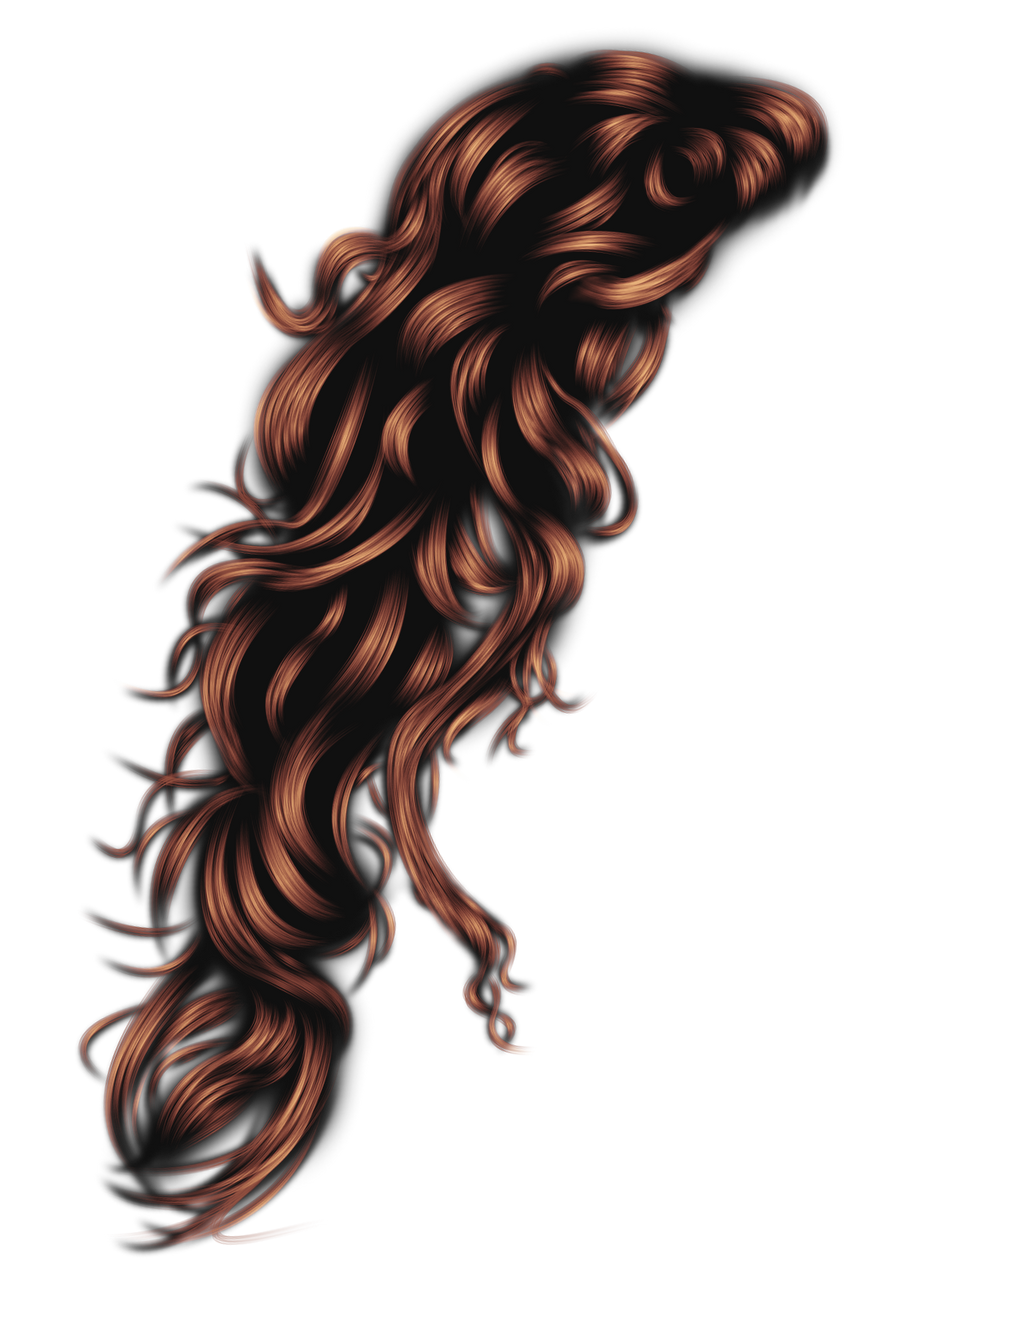 Fantasy Hair 24 by hellonlegs